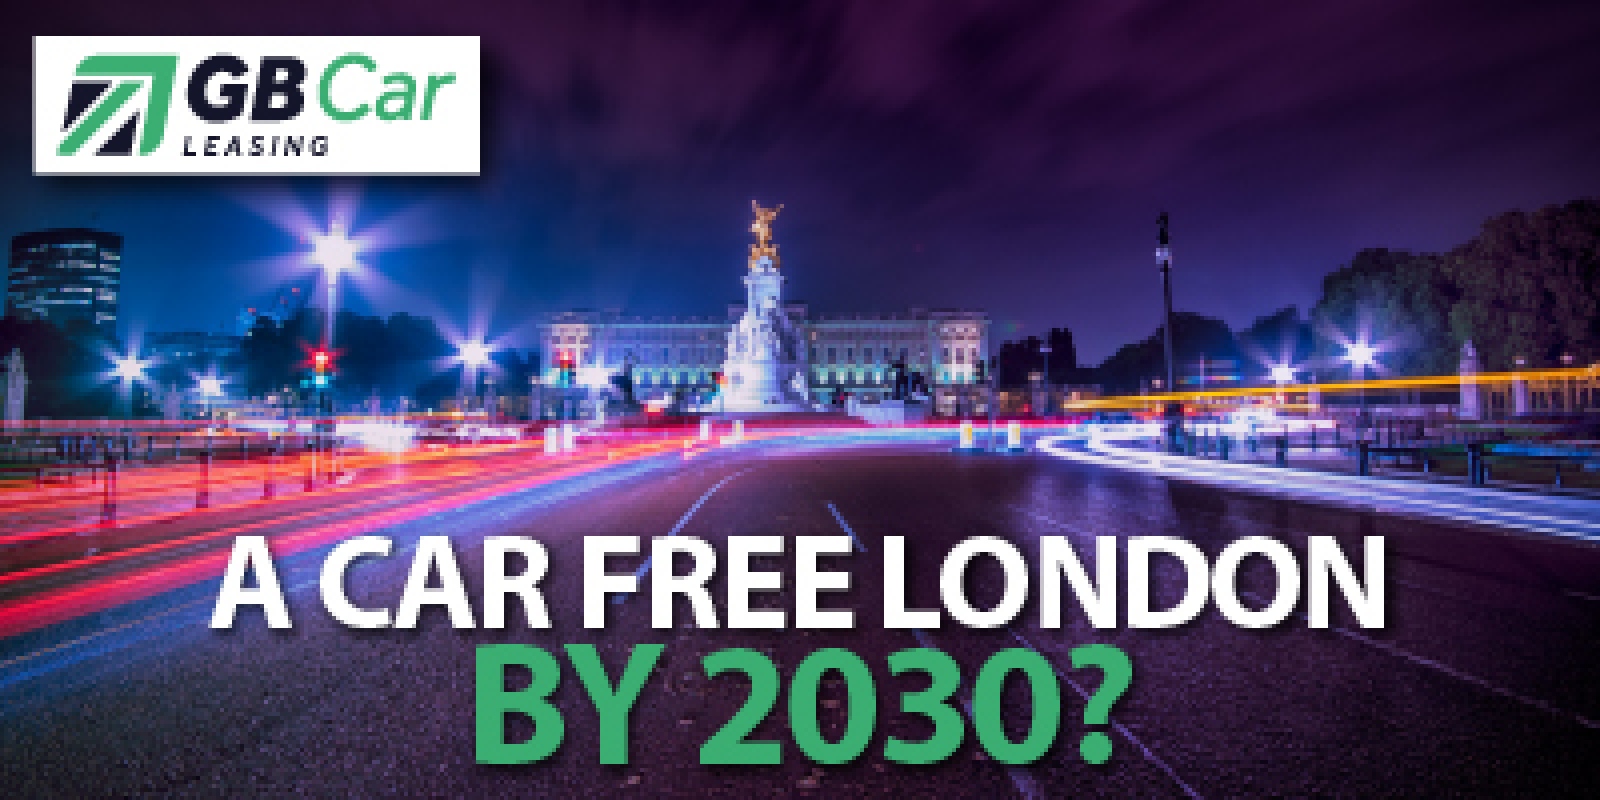 A car free London by 2030?